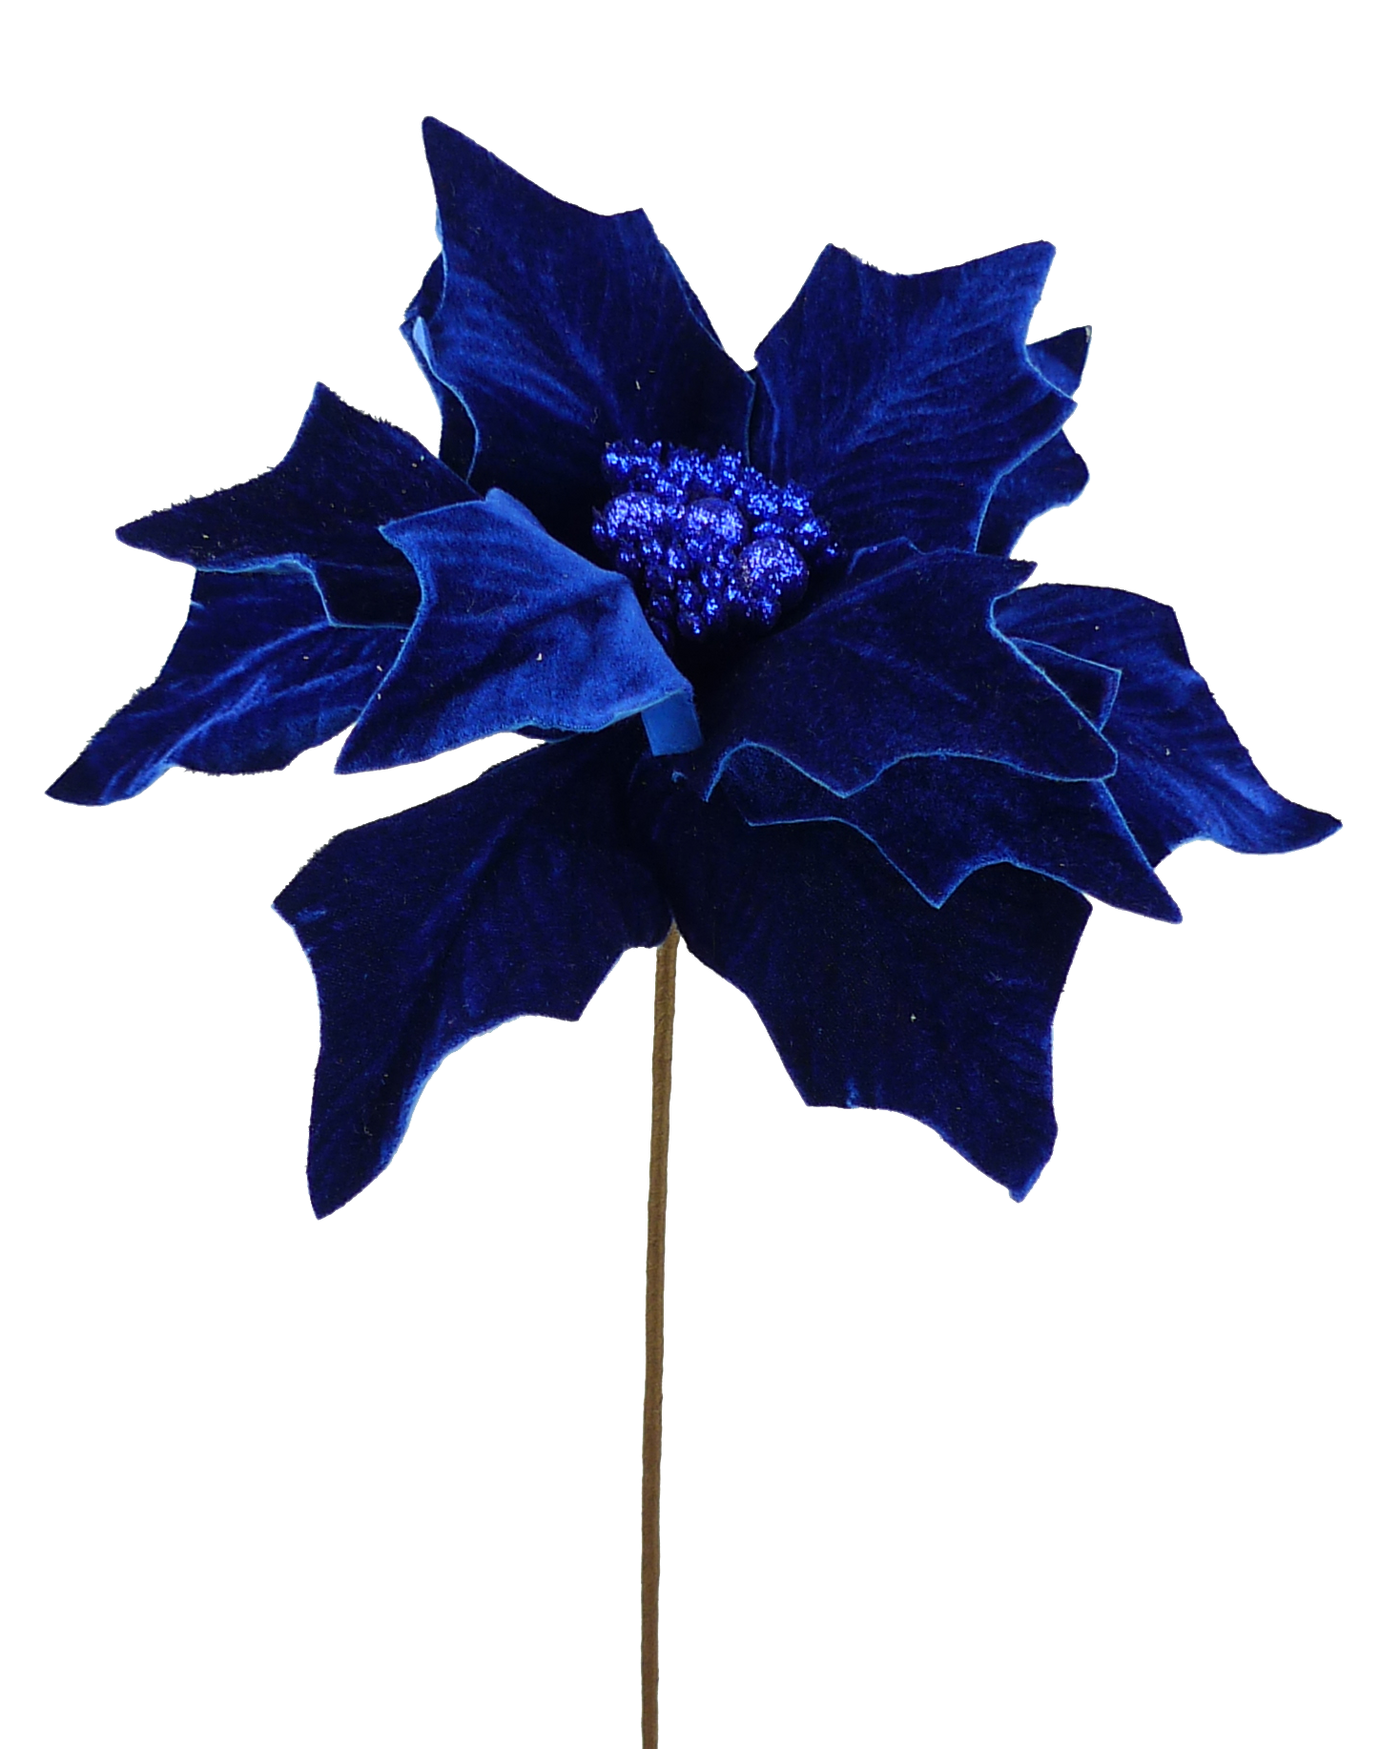 helloholidays,Velvet Blue Poinsetta,Liberty,Pick